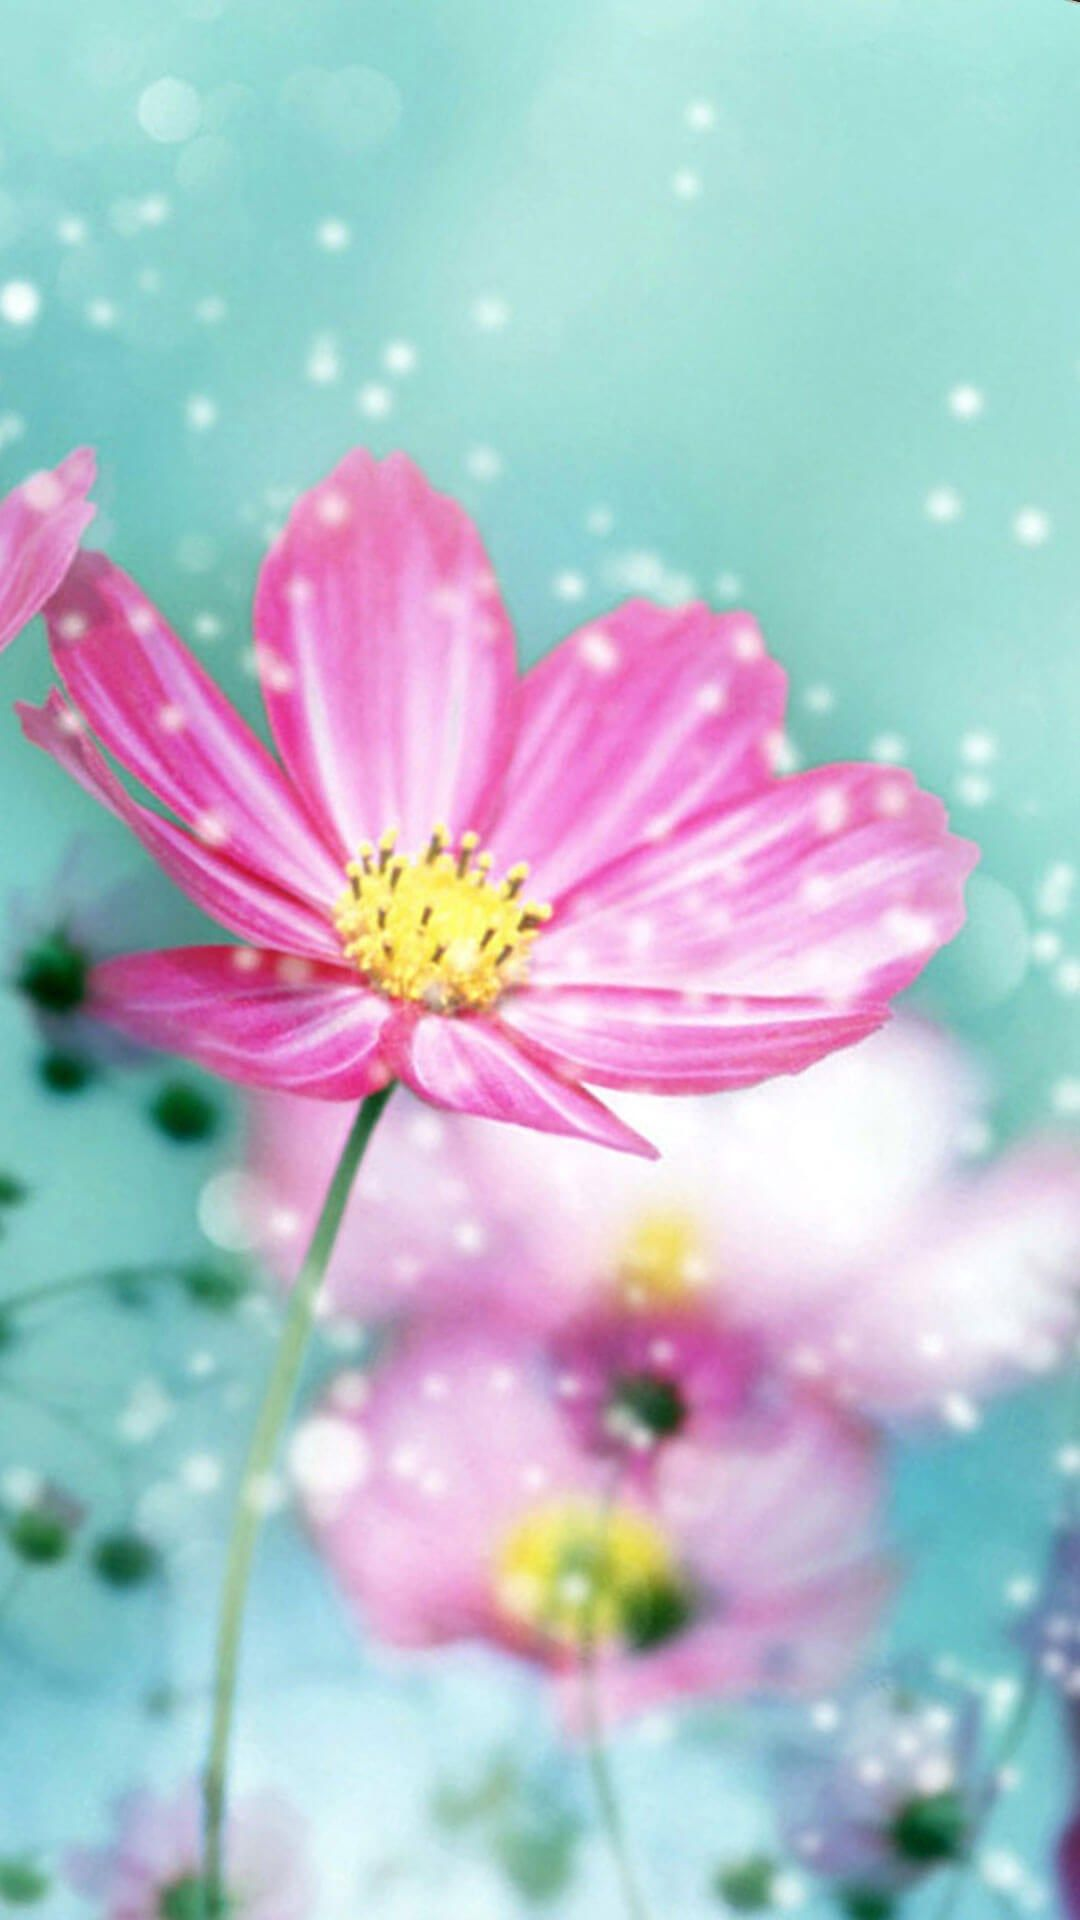 Spring Flower Iphone Hd Wallpaper